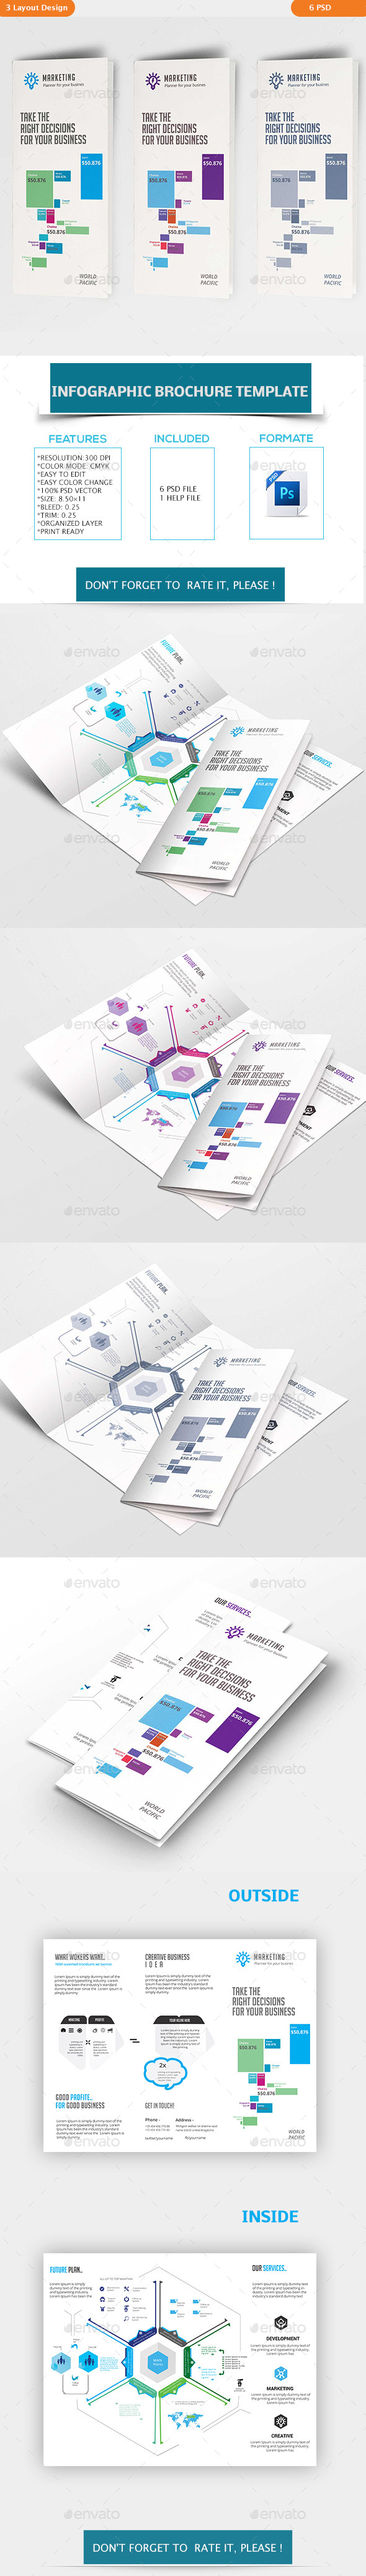 Infographic Brochure Template by suzon_abdullah | GraphicRiver